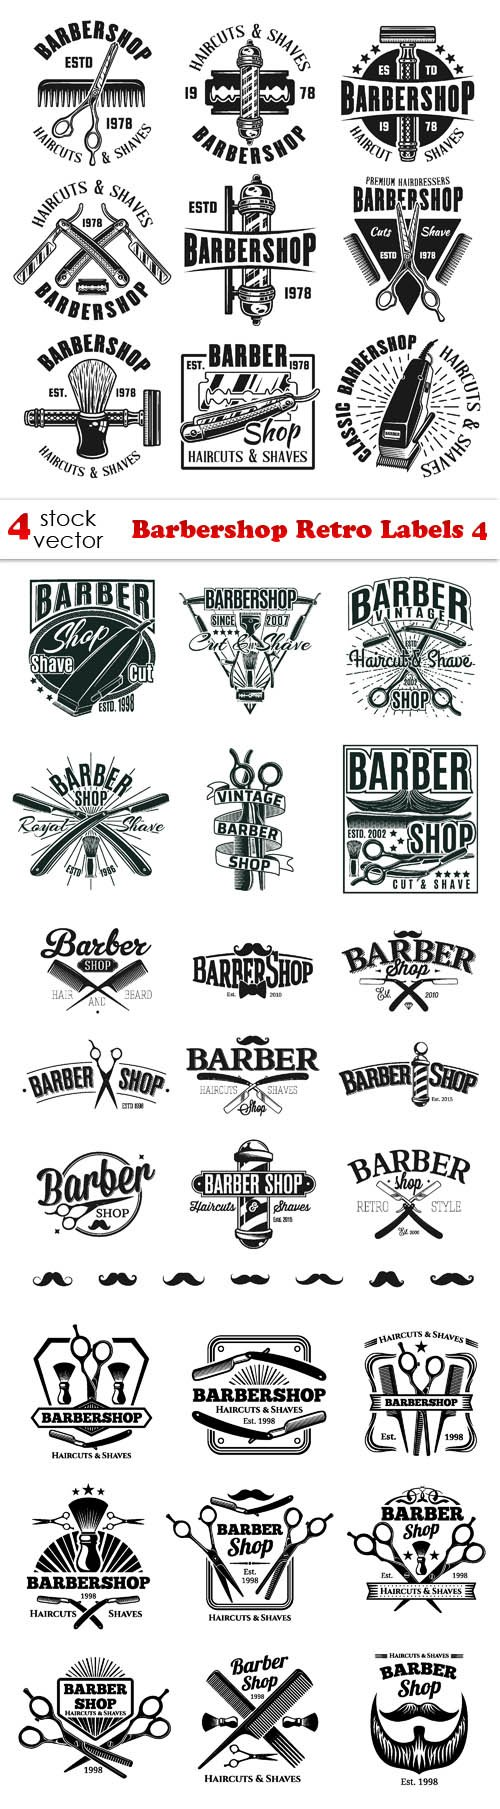 Vectors - Barbershop Retro Labels 4